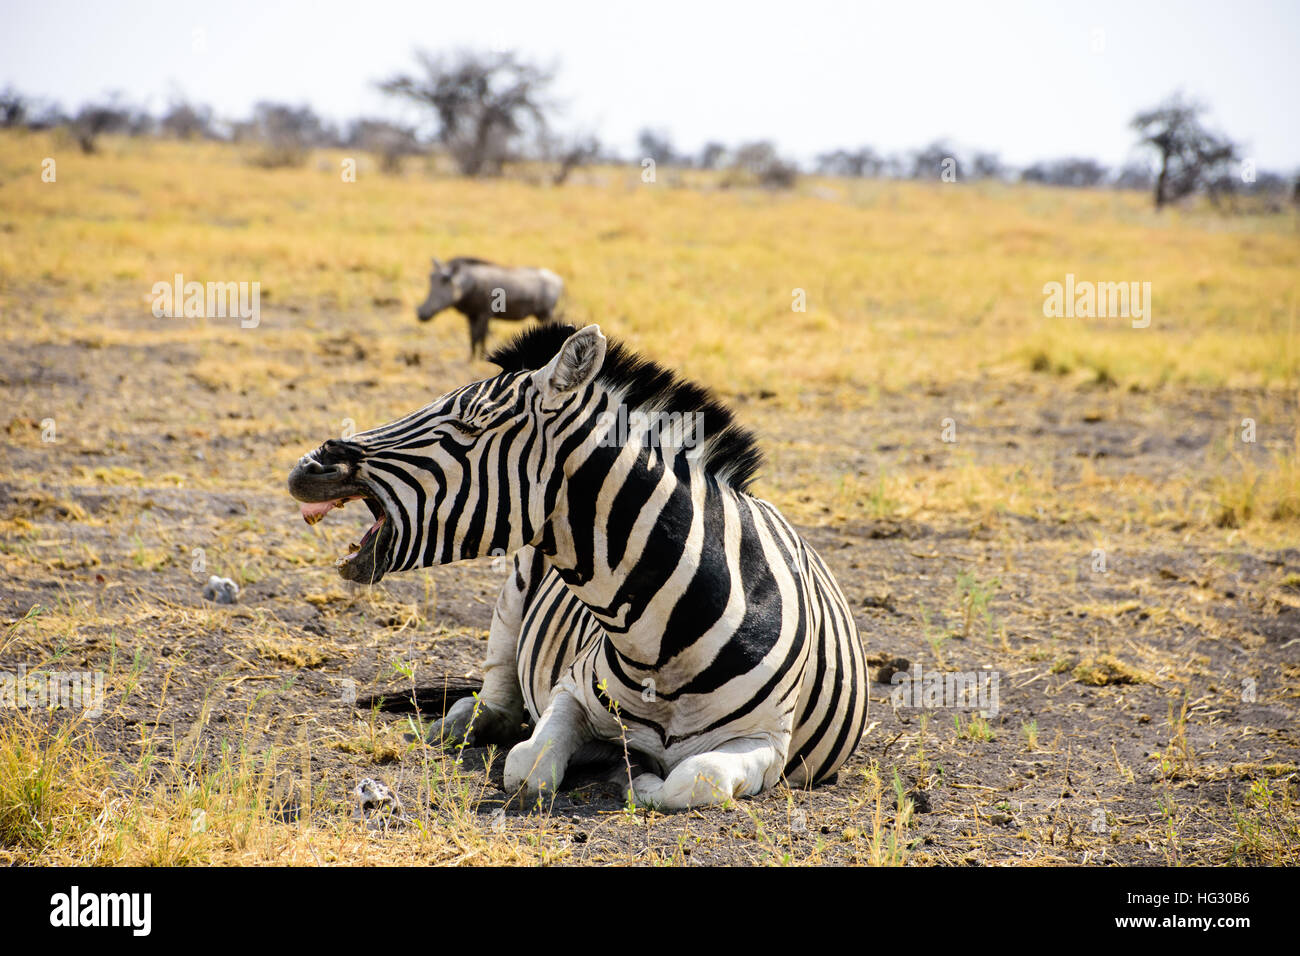 Tired Zebra yawning - Stock Image